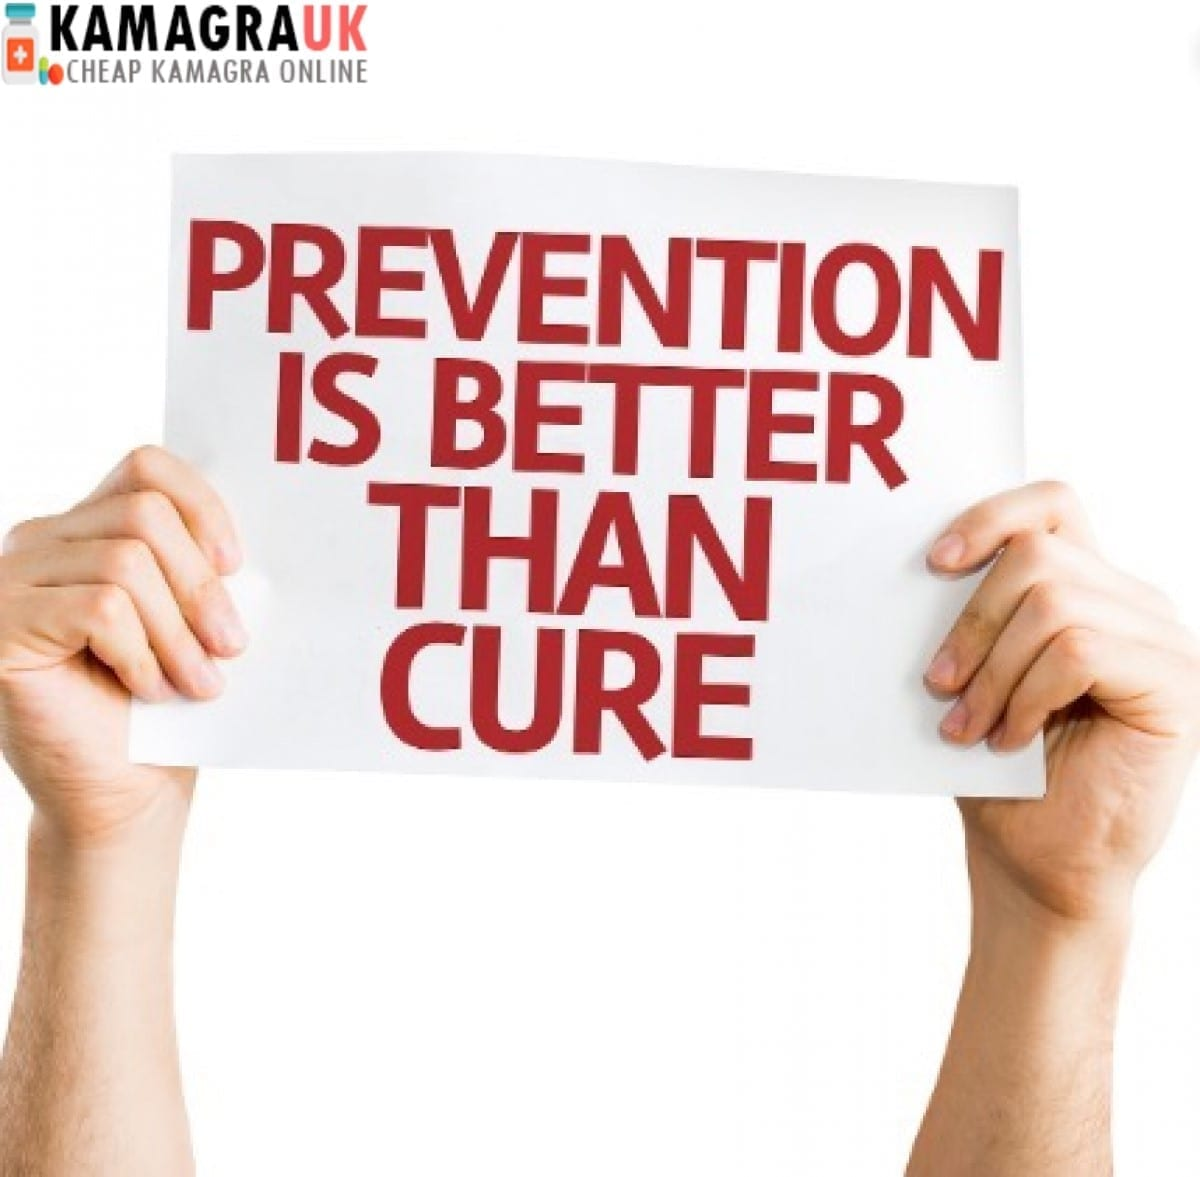 How Can I Prevent Erectile Dysfunction?